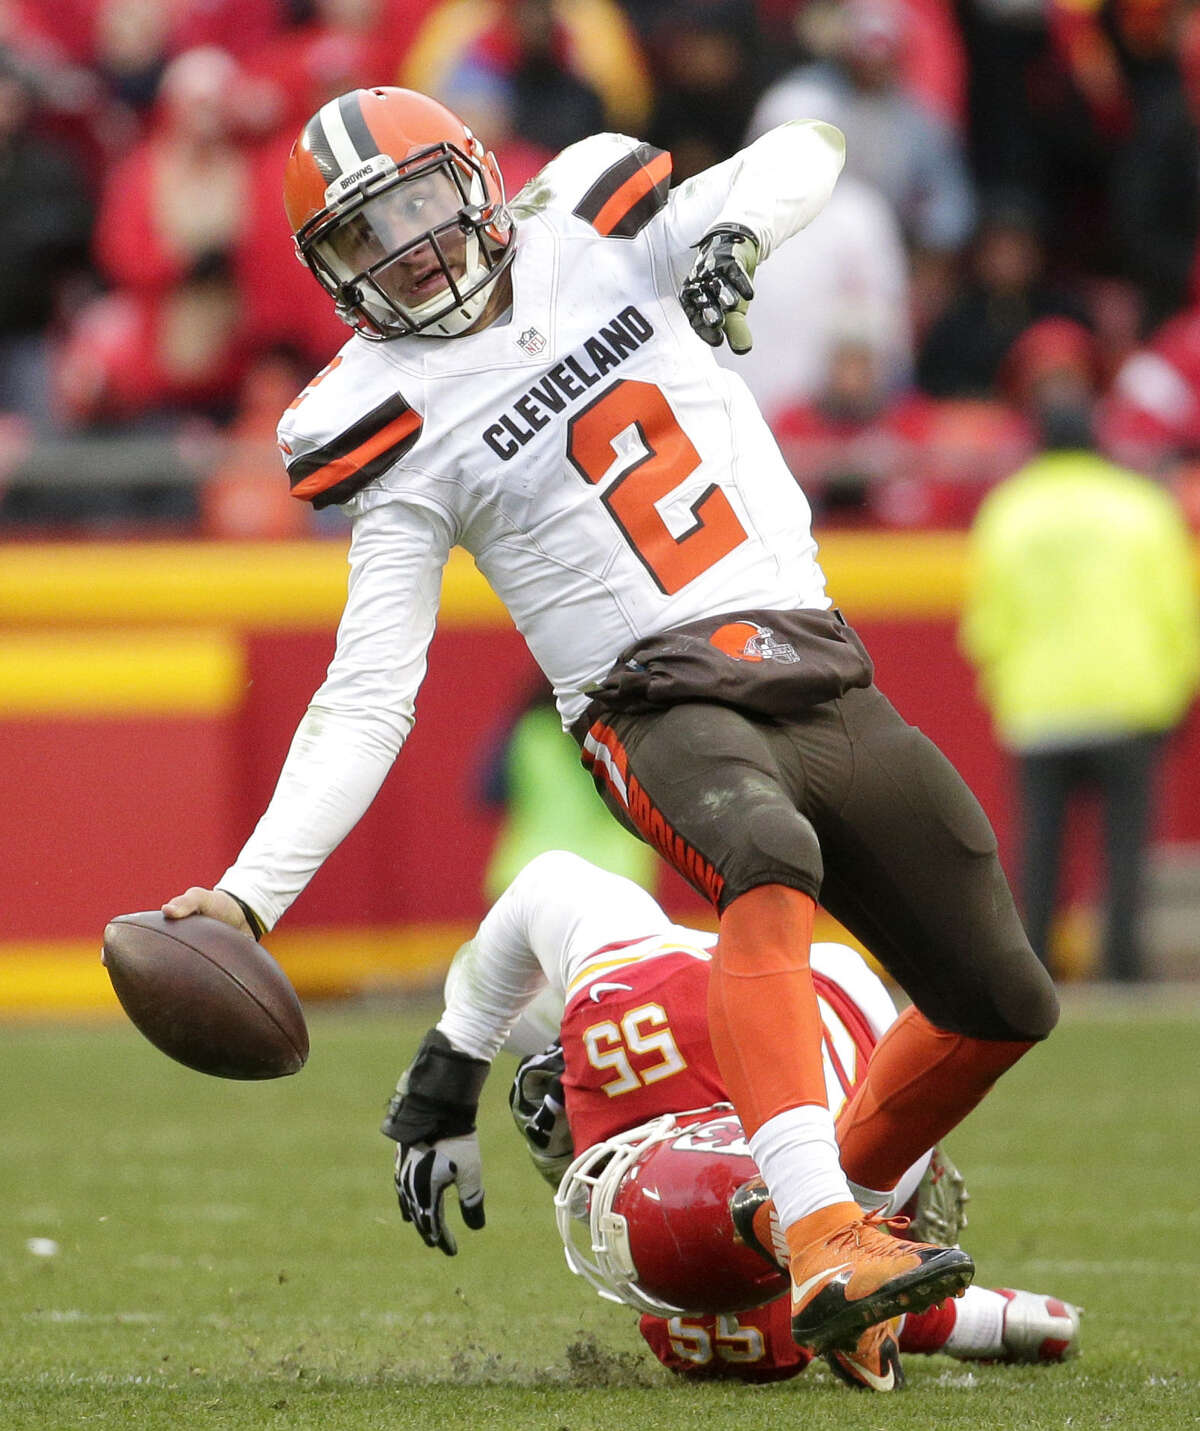 Cleveland Browns quarterback Johnny Manziel (2) is tackled by Kansas City Chiefs linebacker Dee Ford (55) during the second half of an NFL football game in Kansas City, Mo., Sunday, Dec. 27, 2015. (AP Photo/Charlie Riedel)